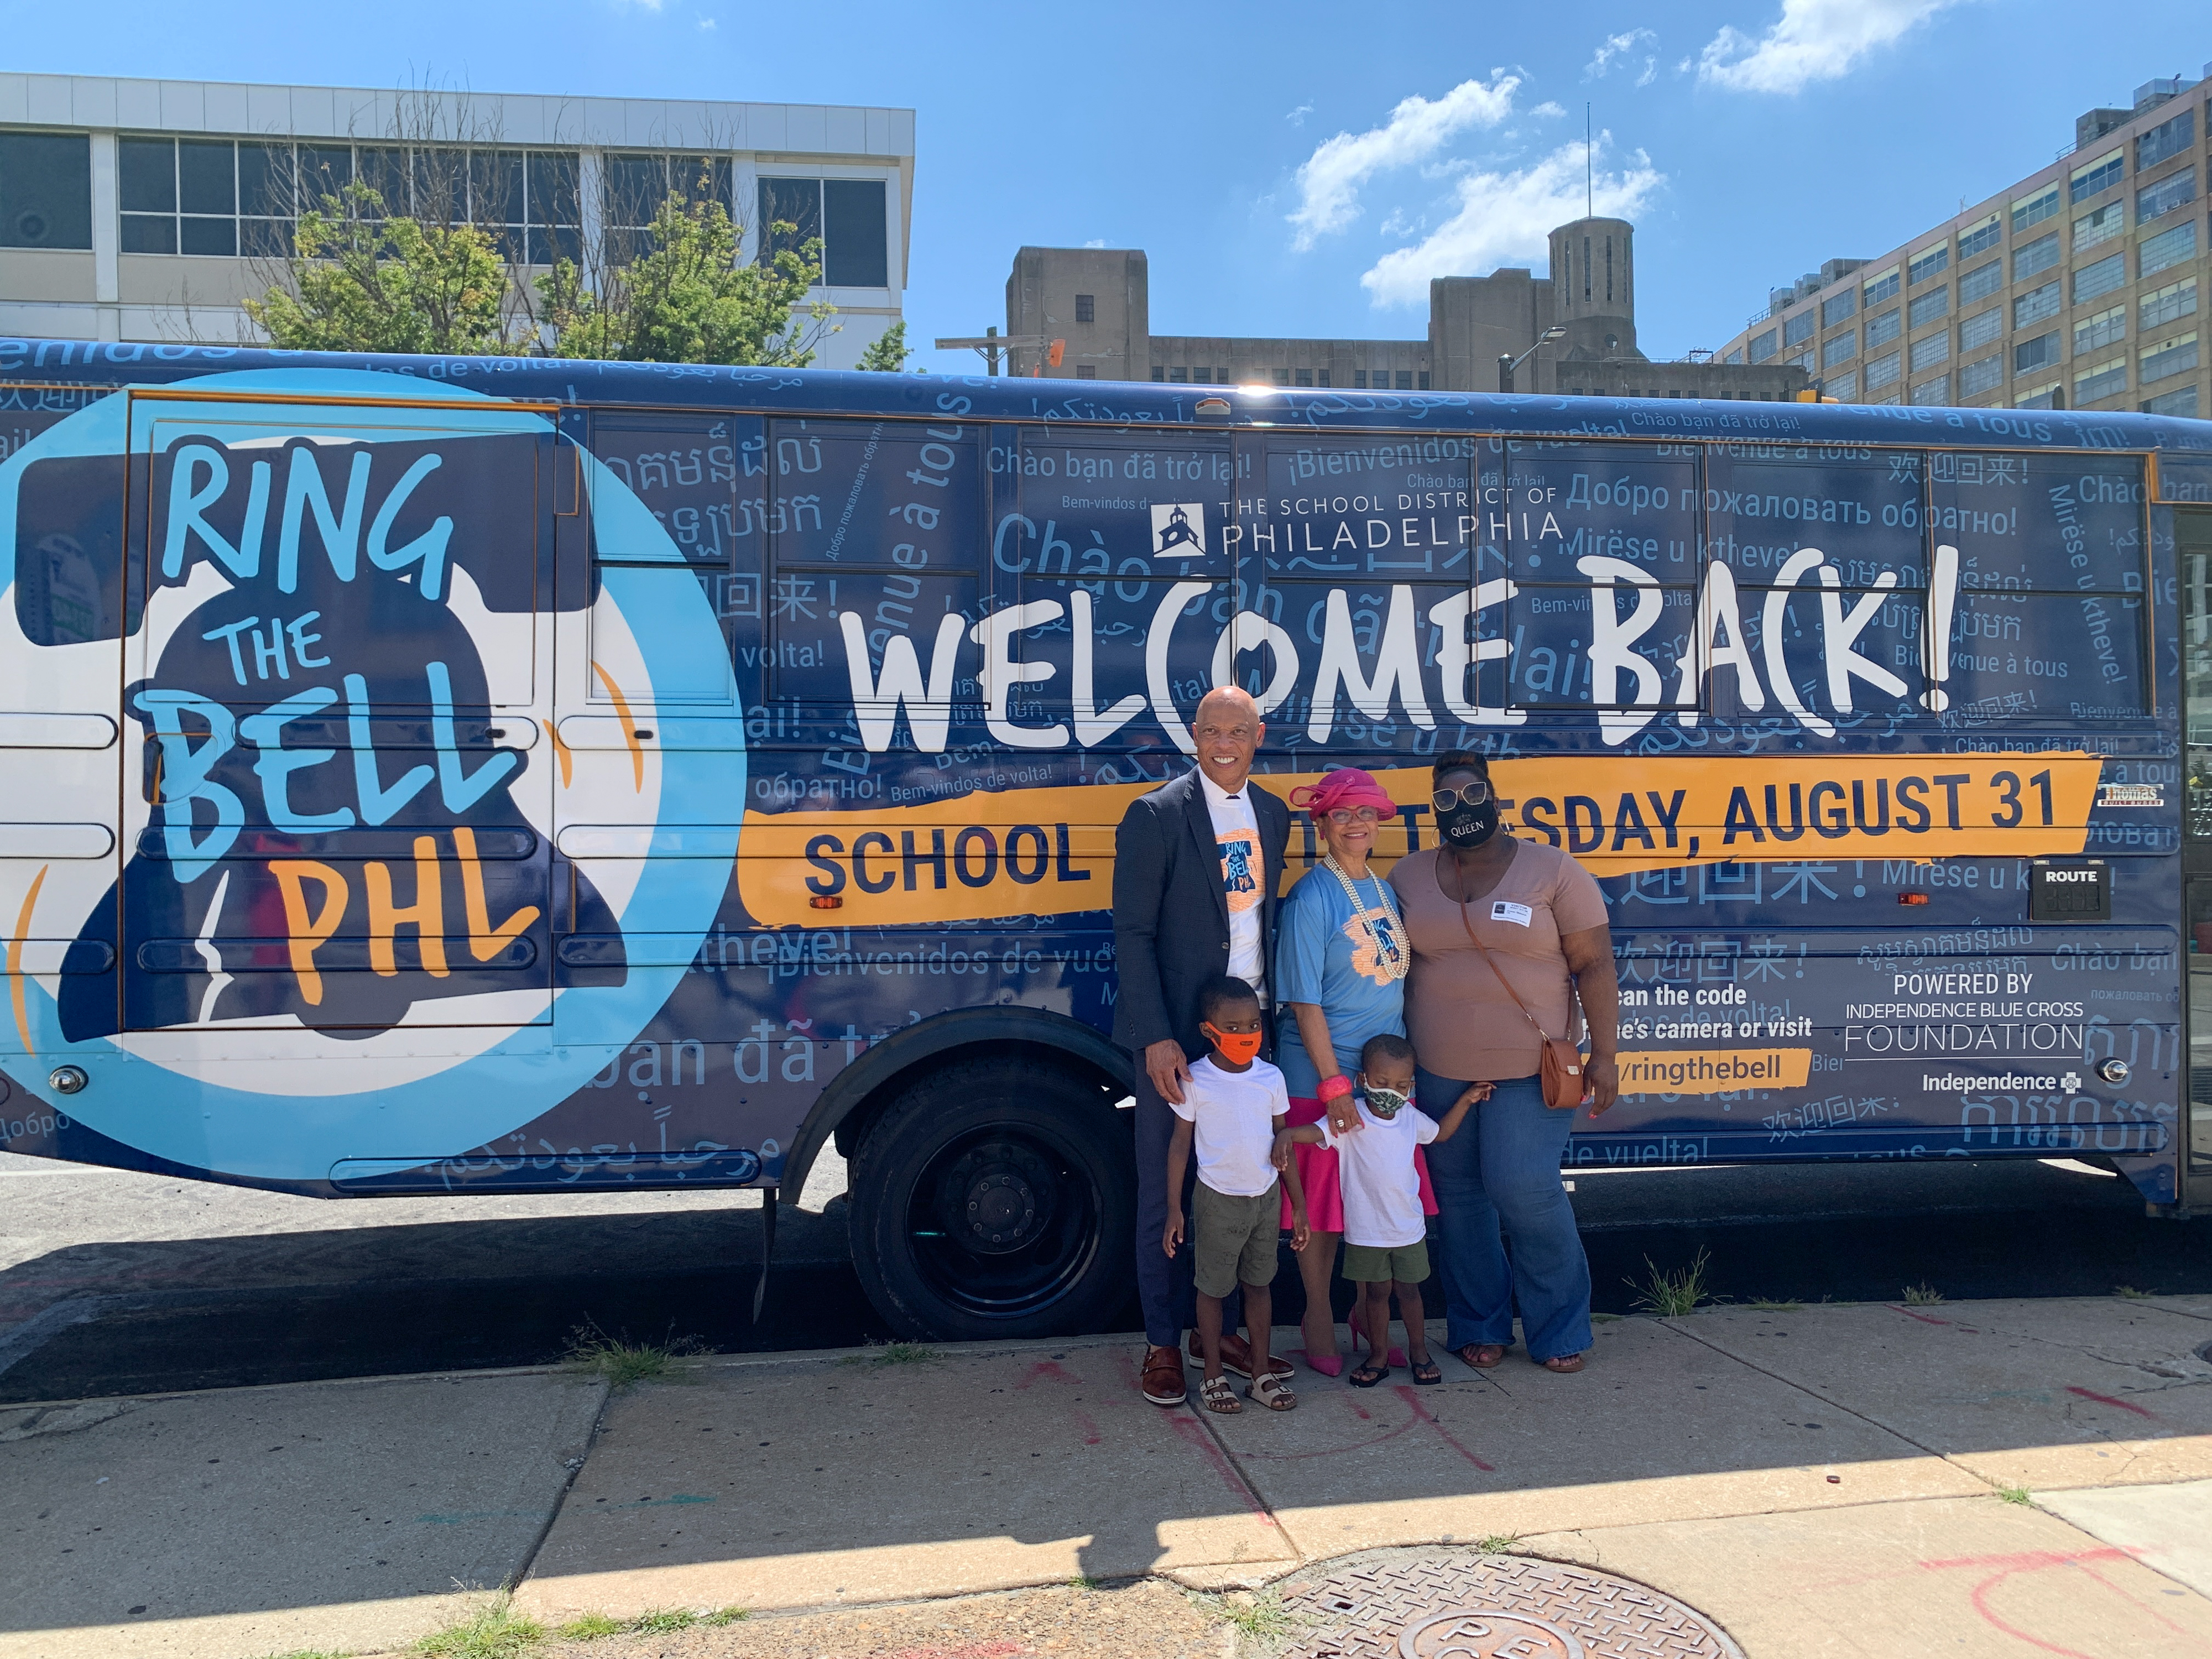 """Philadelphia Superintendent William Hite stands in front of a large bus that reads """"Ring the Bell PHL, Welcome Back!"""" with two women and two young boys."""